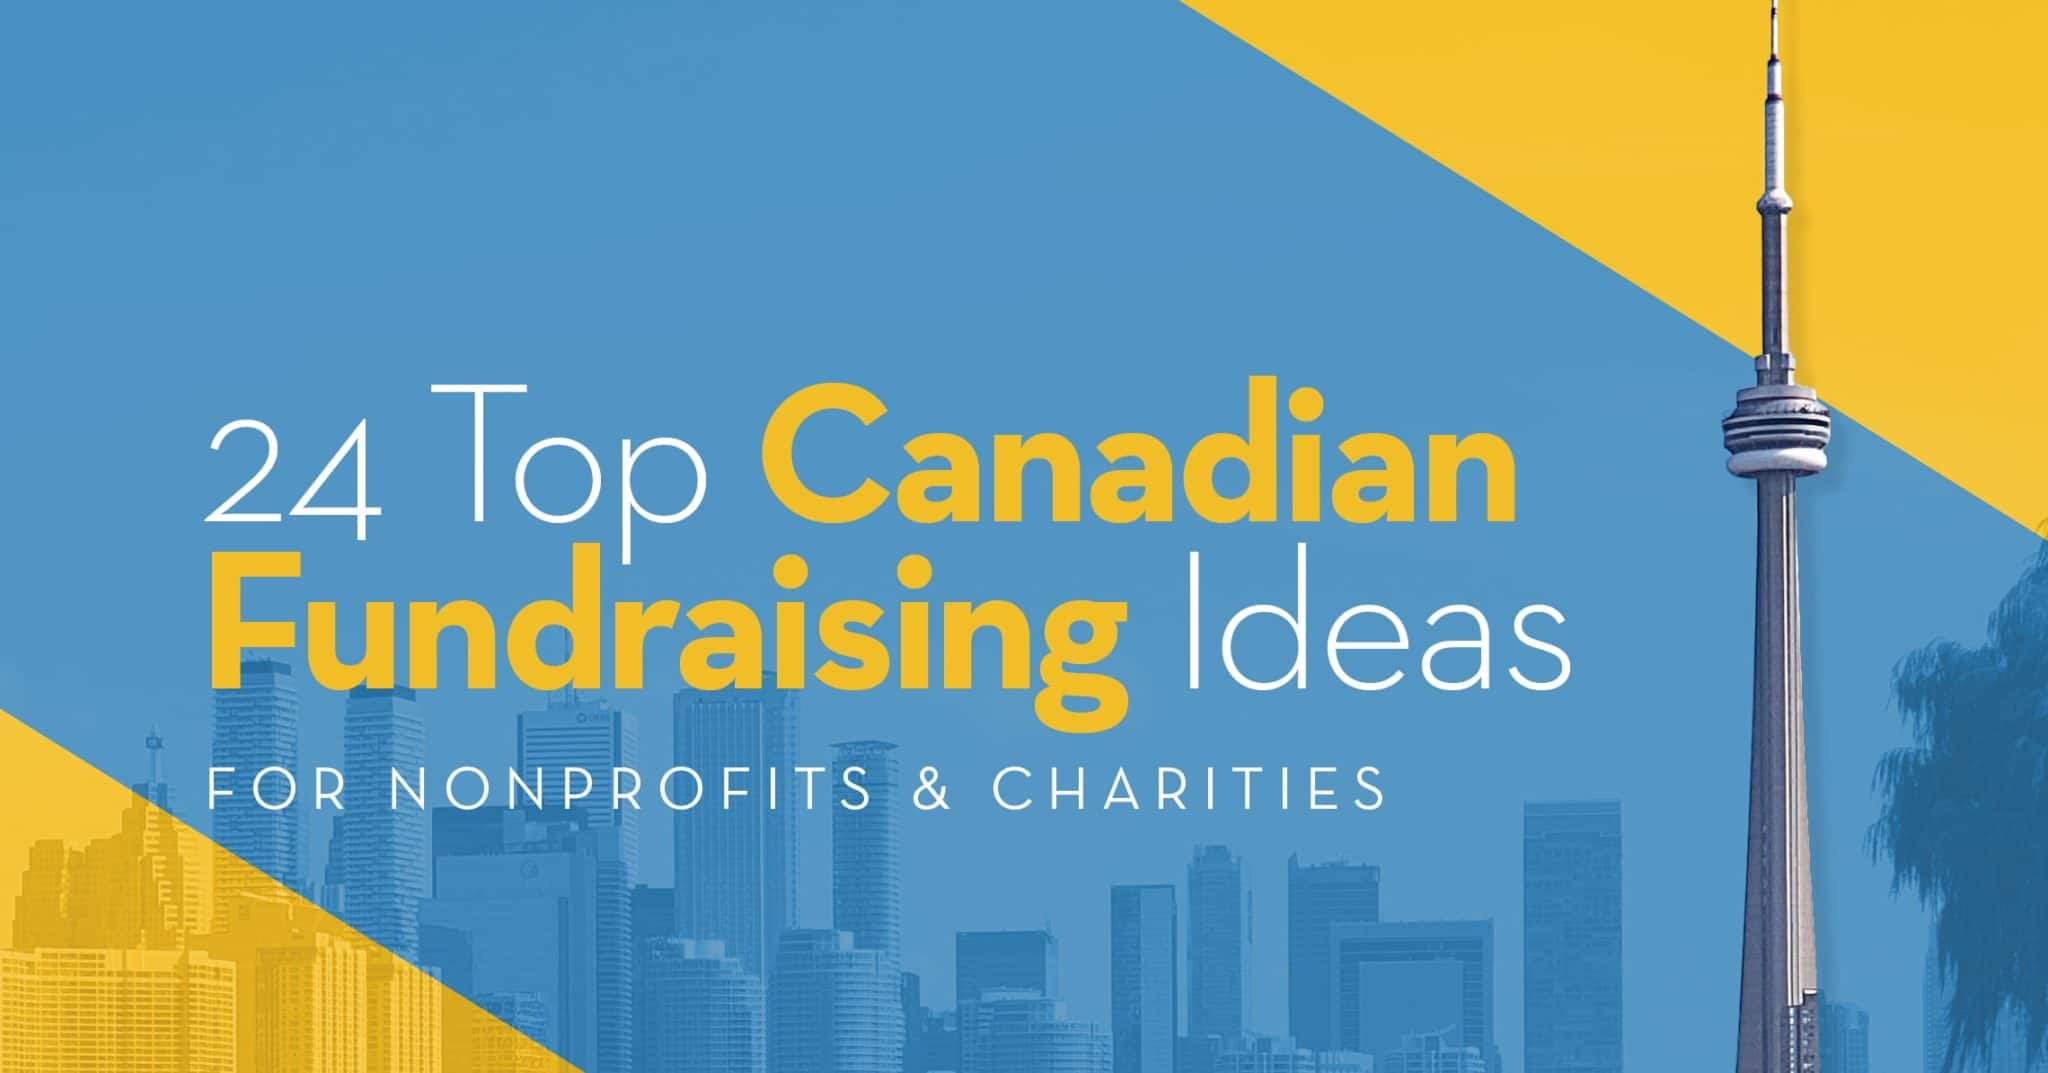 24 Top Canadian Fundraising Ideas for Nonprofits & Charities